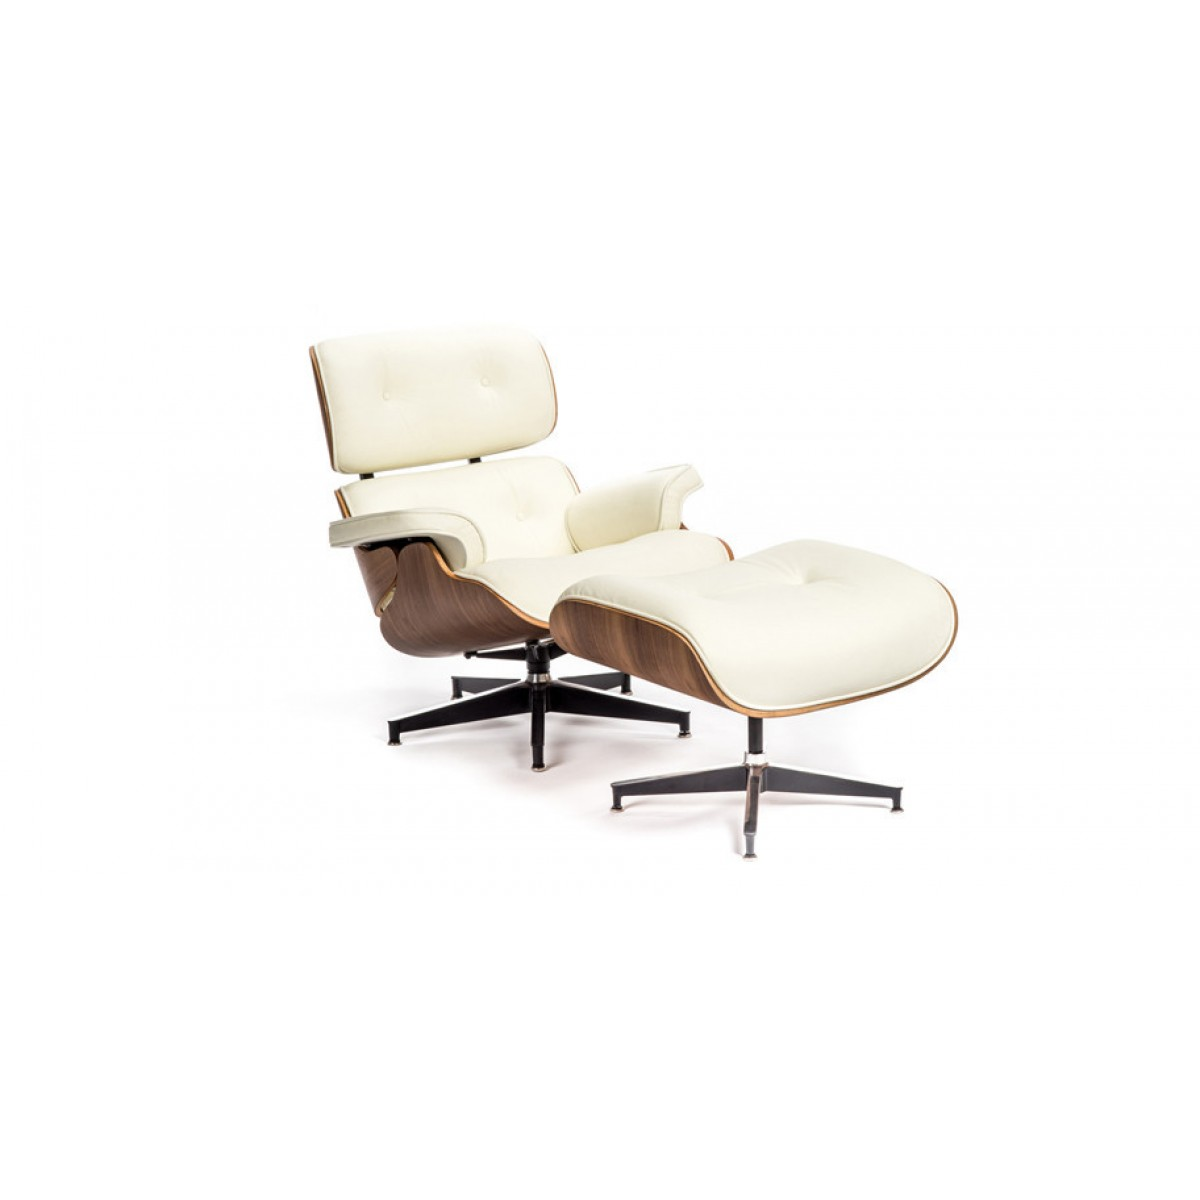 Eames style lounge chair and ottoman white leather walnut for Eames chair replica uk